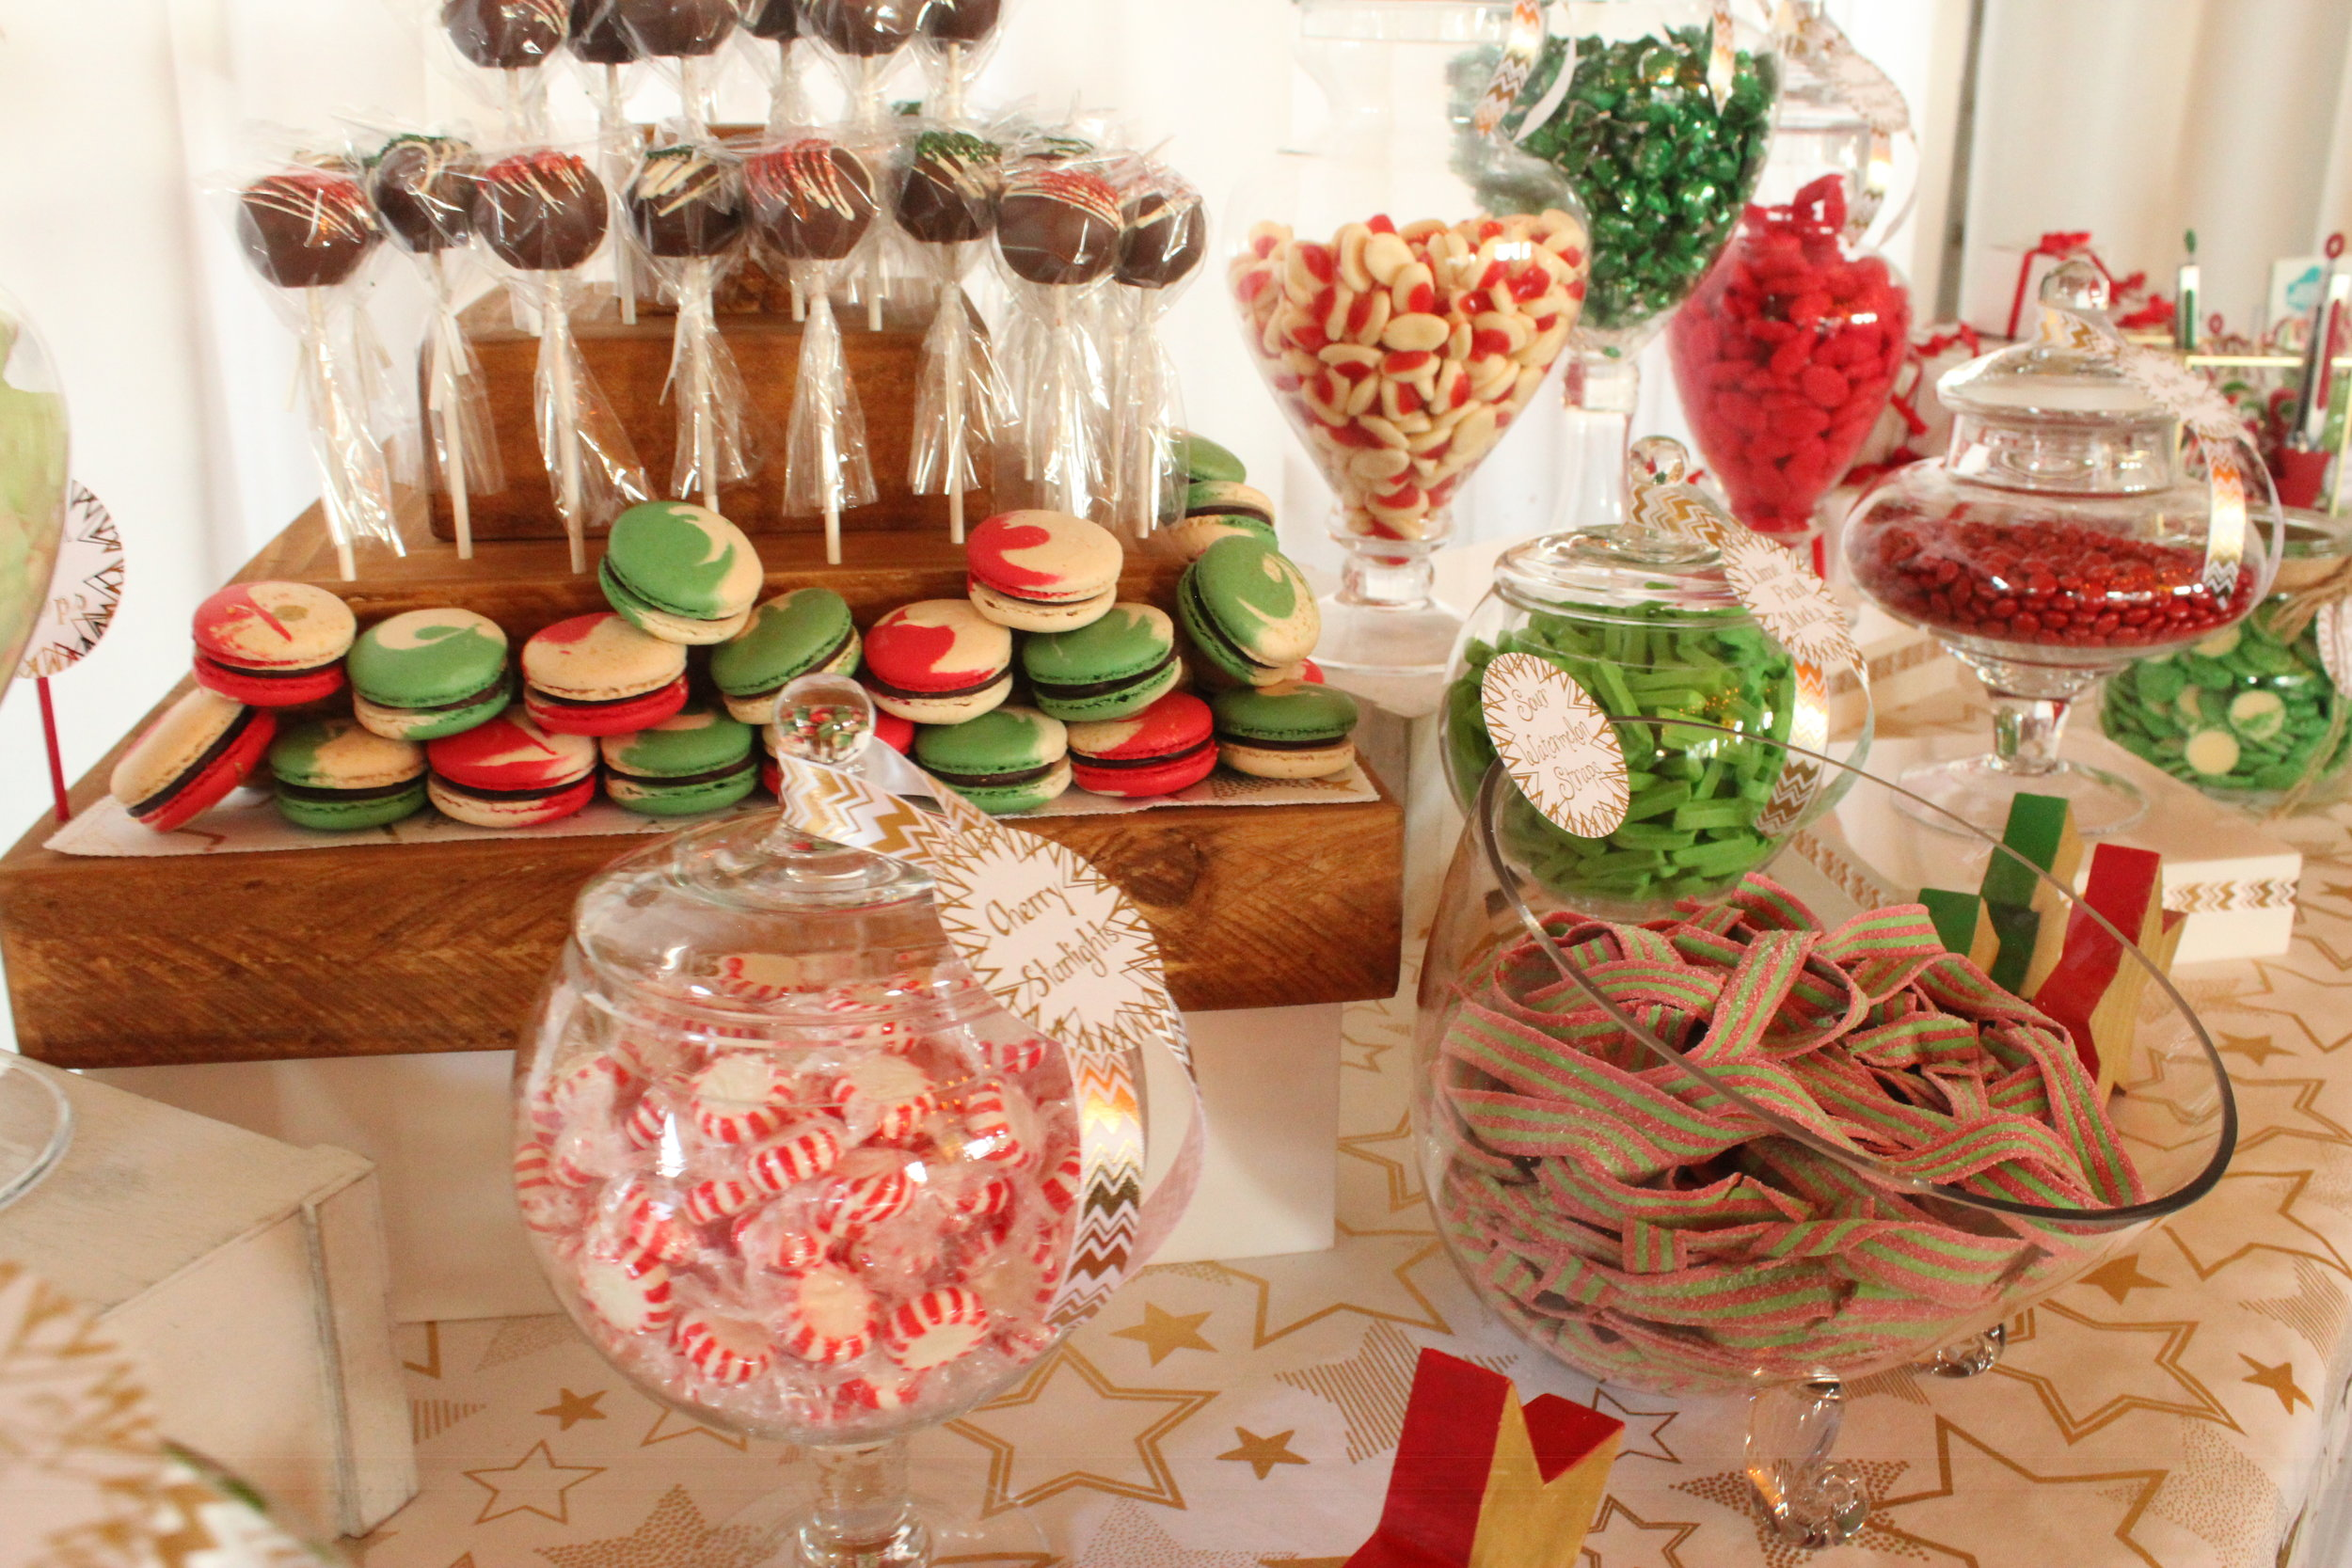 Christmas Candy Bar - Red, Green, White, Gold 8/11 - Cherry Starlights